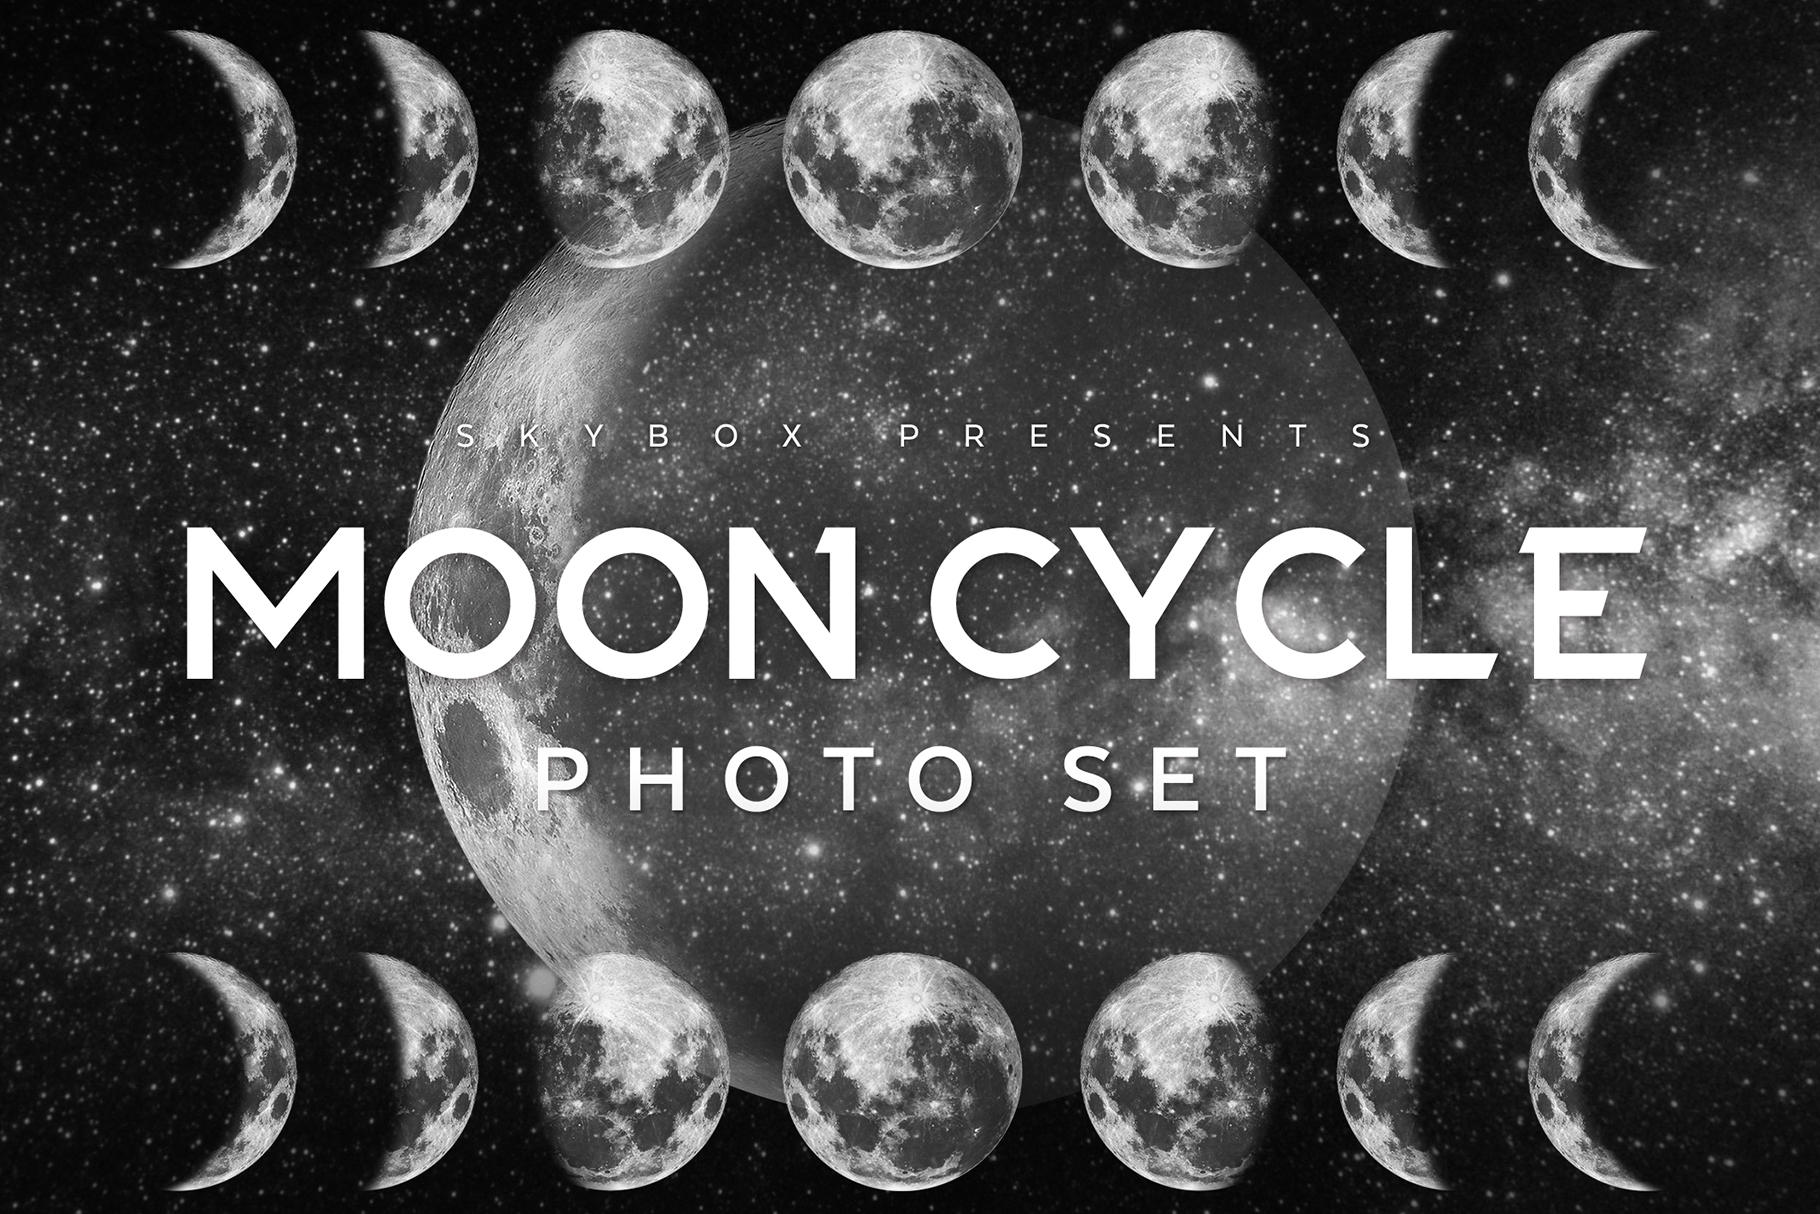 The Ultimate Moon Cycle Photoshop Set: 23 Large Hi-Res Moon Phase Images